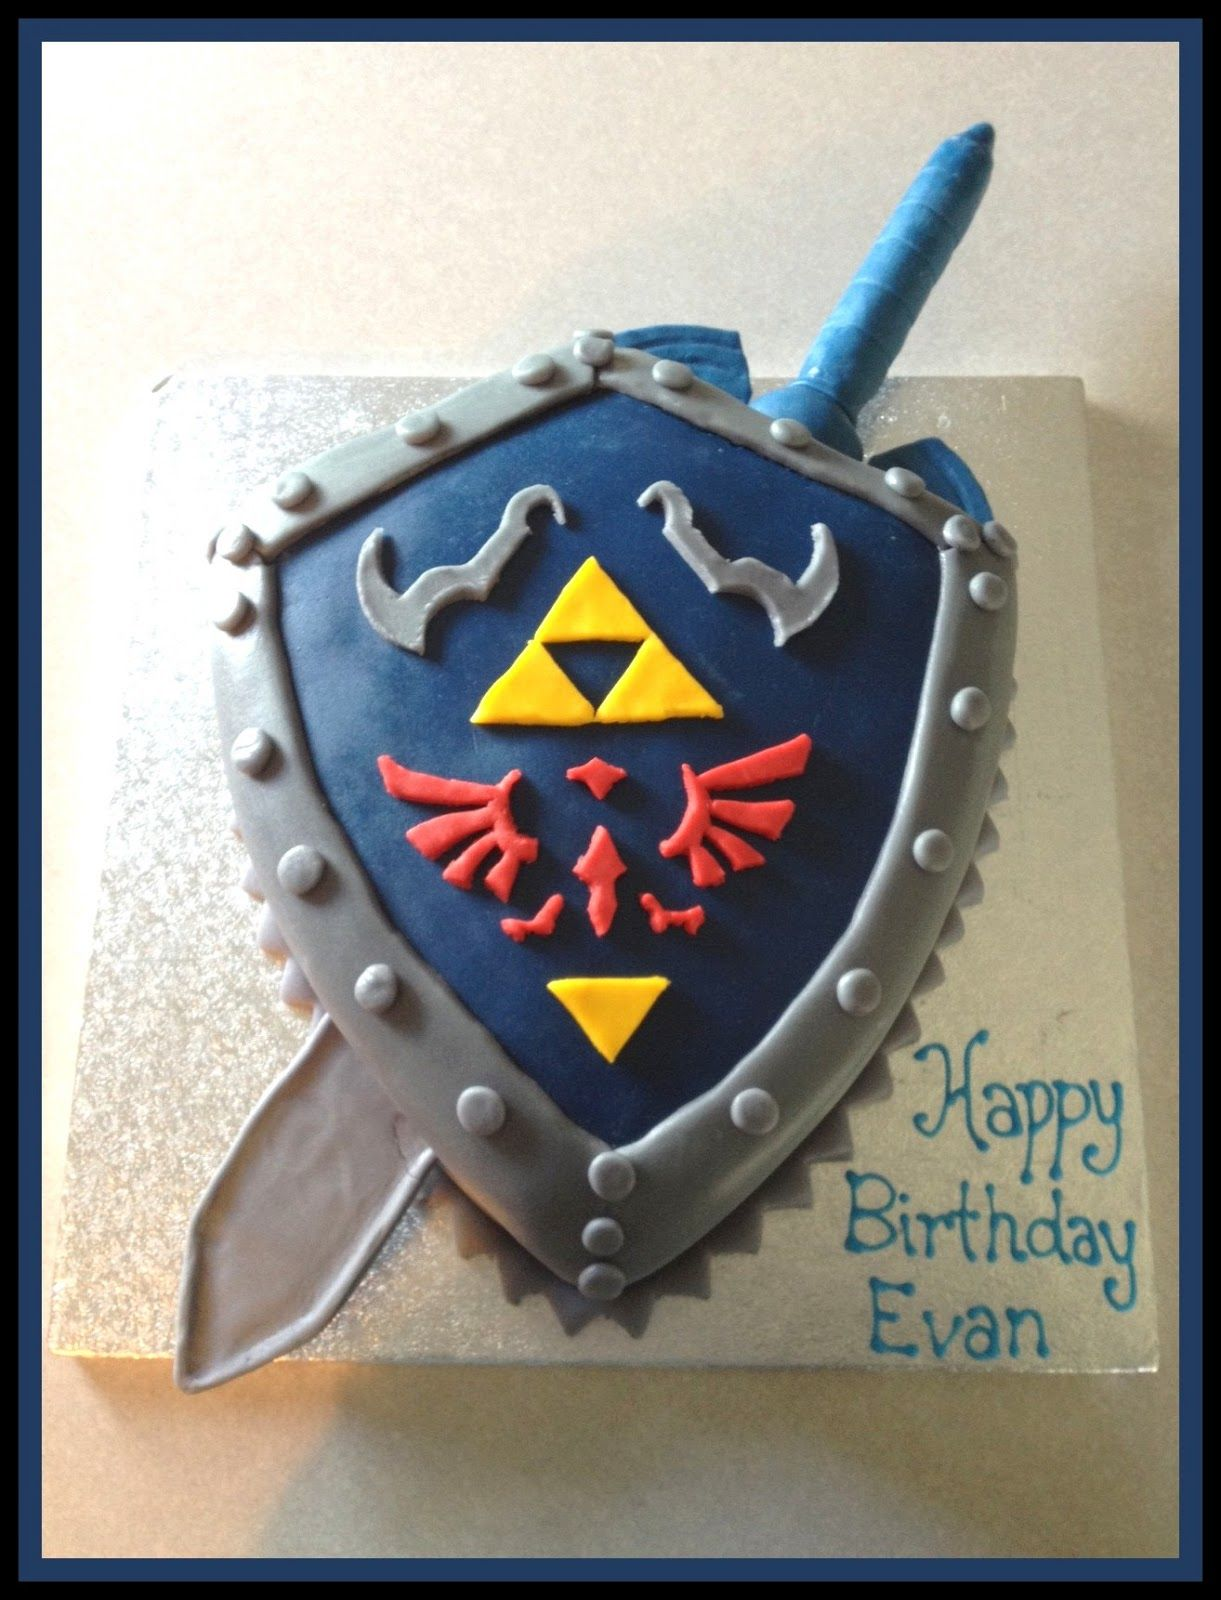 zelda themed cakes into the world of video games for